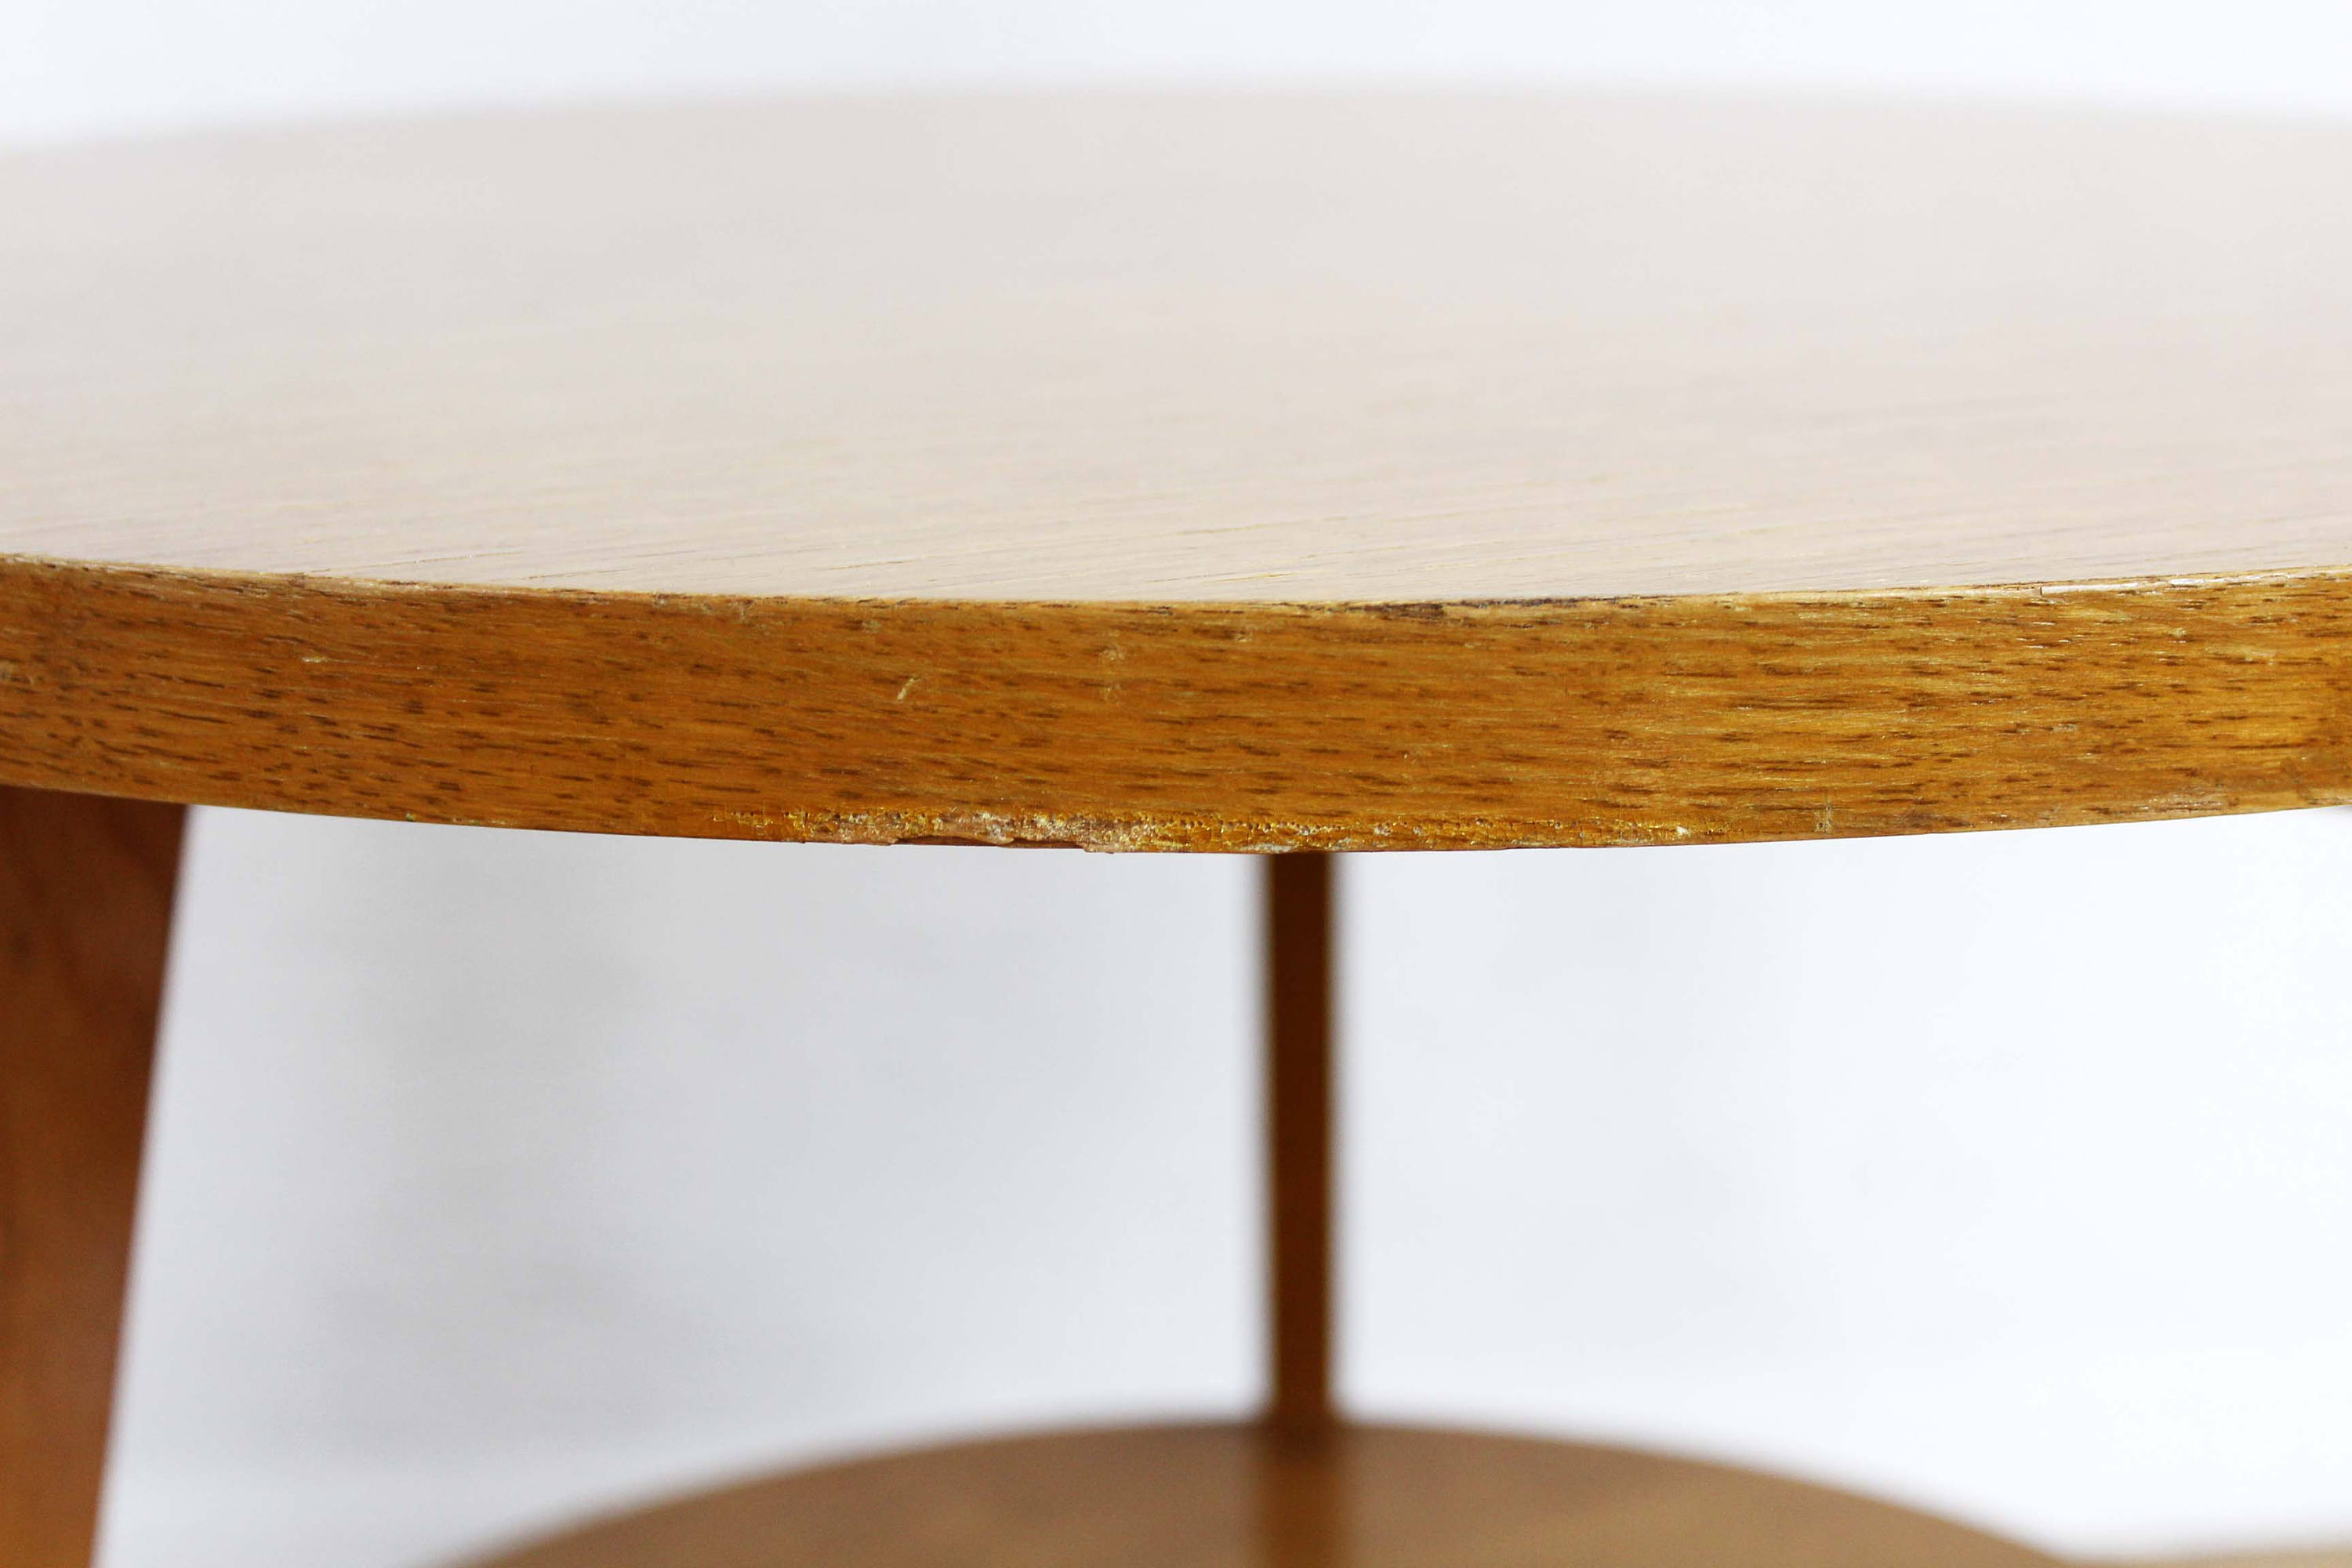 Table d'appoint design scandinave